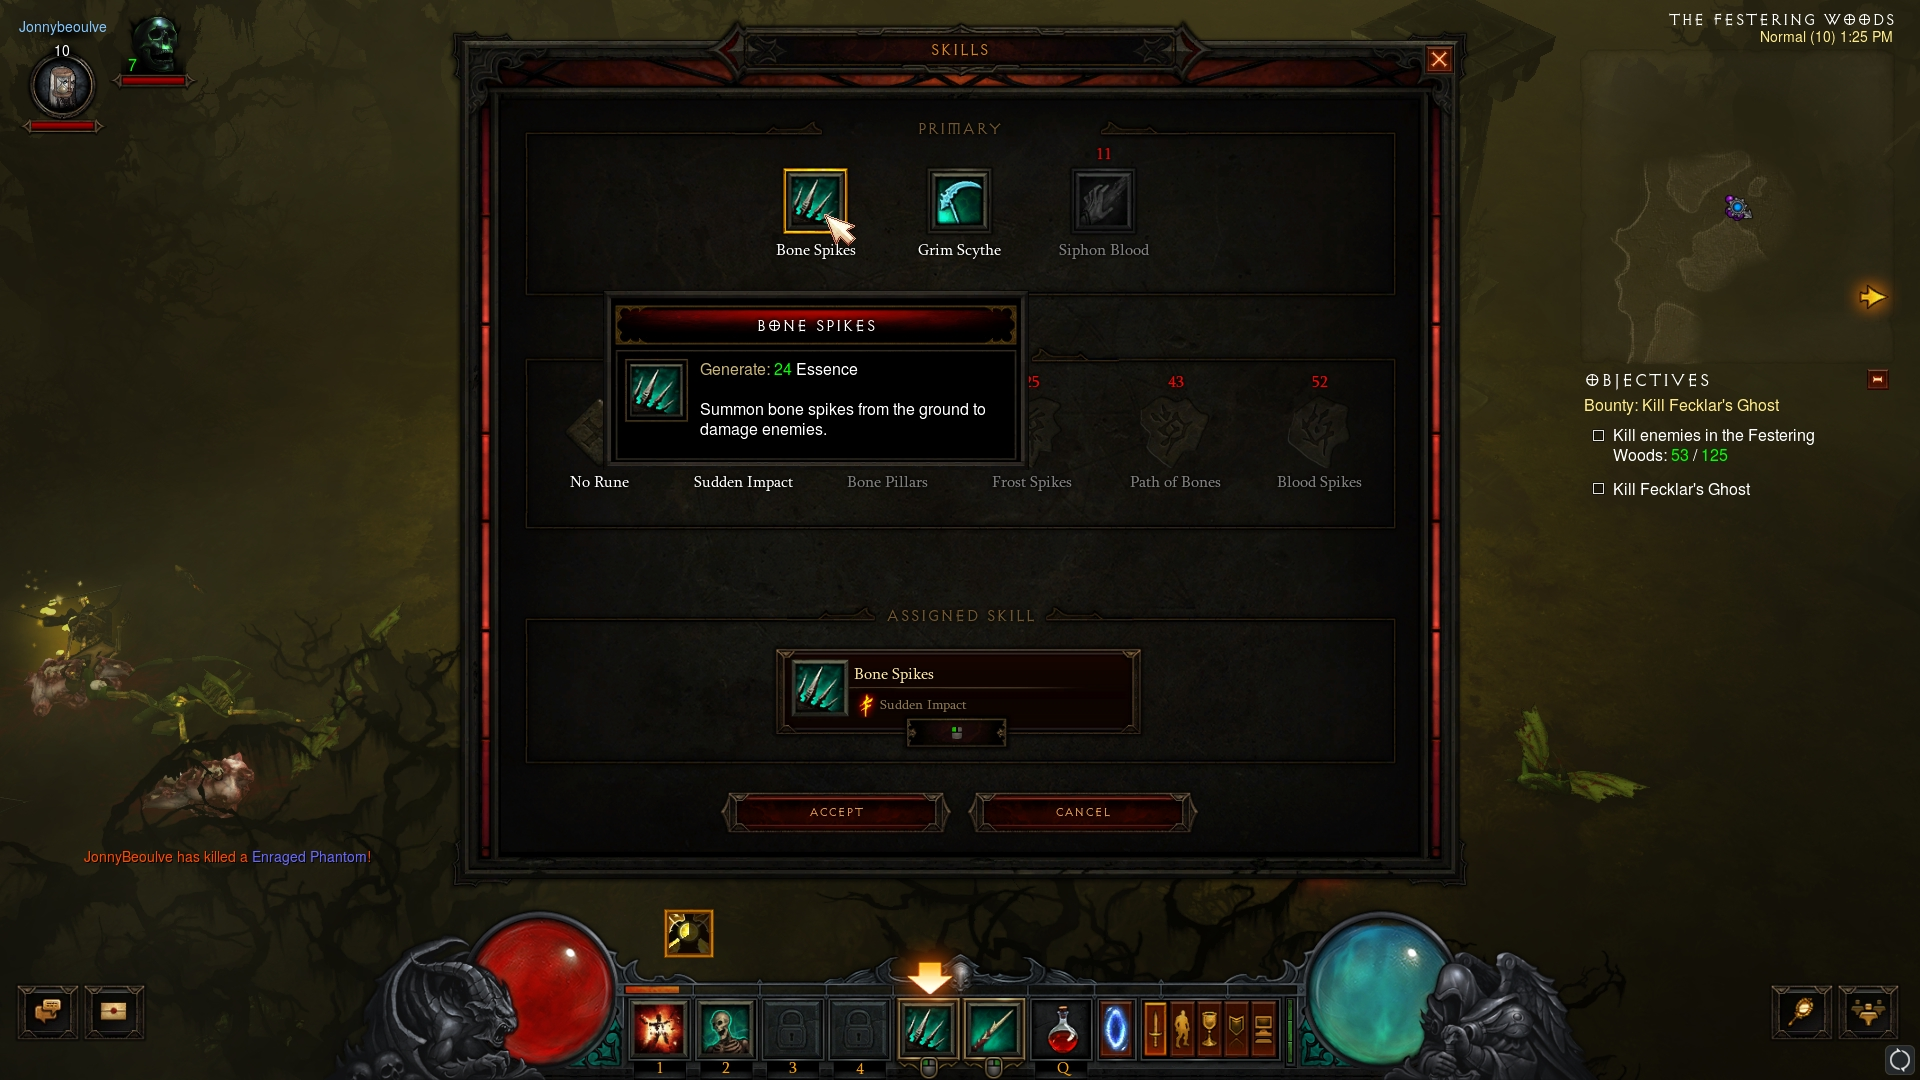 Diablo 3: Necromancer Abilities #1